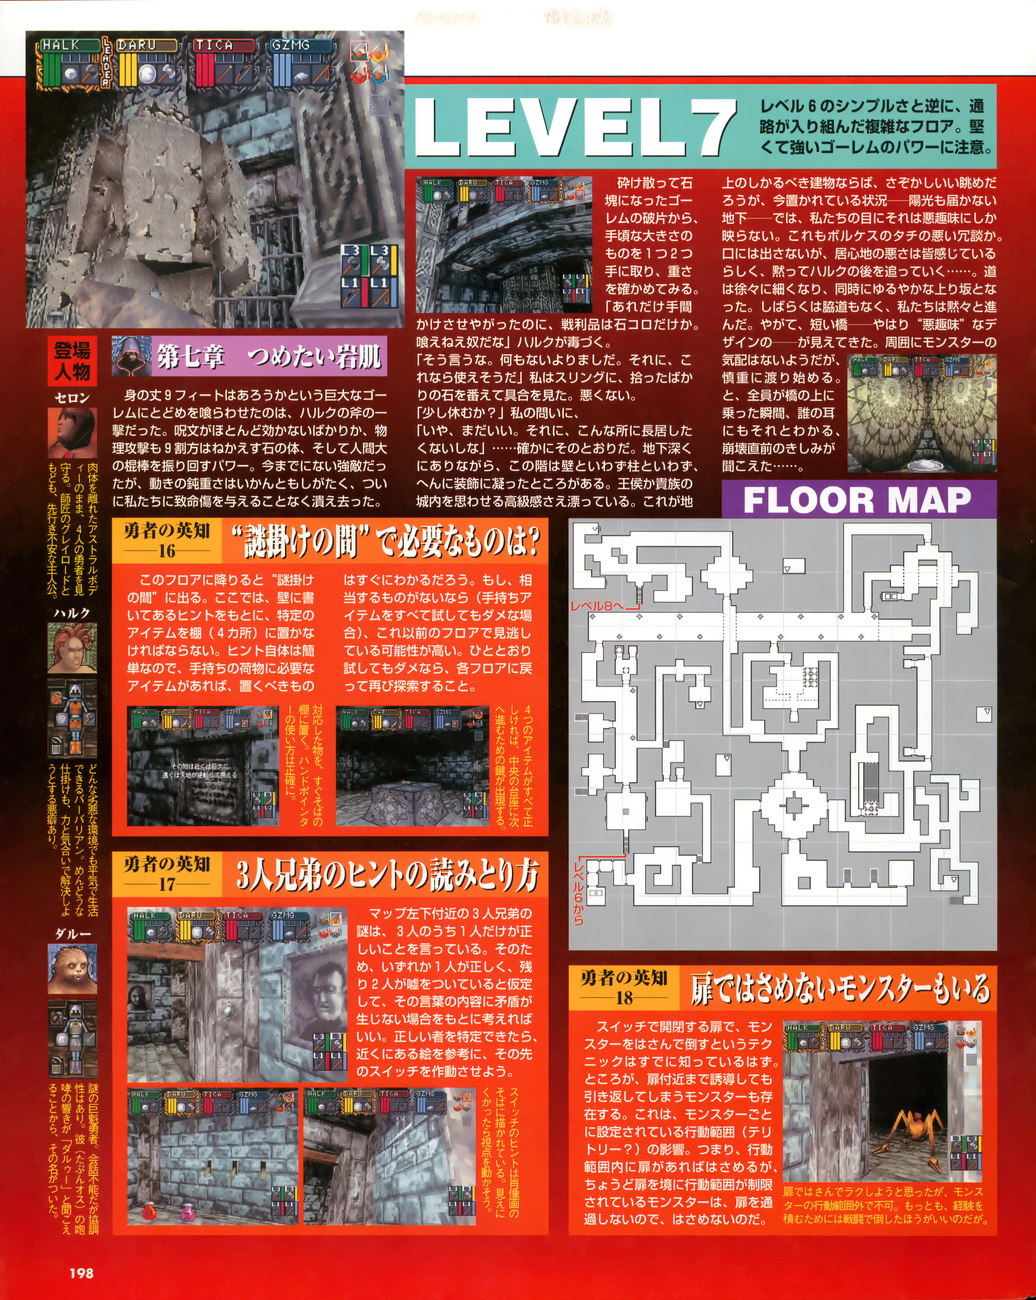 Dungeon Master Nexus Guide published in Japanese magazine 'Sega Saturn Magazine', Vol 14 08 May 1998, Page 198